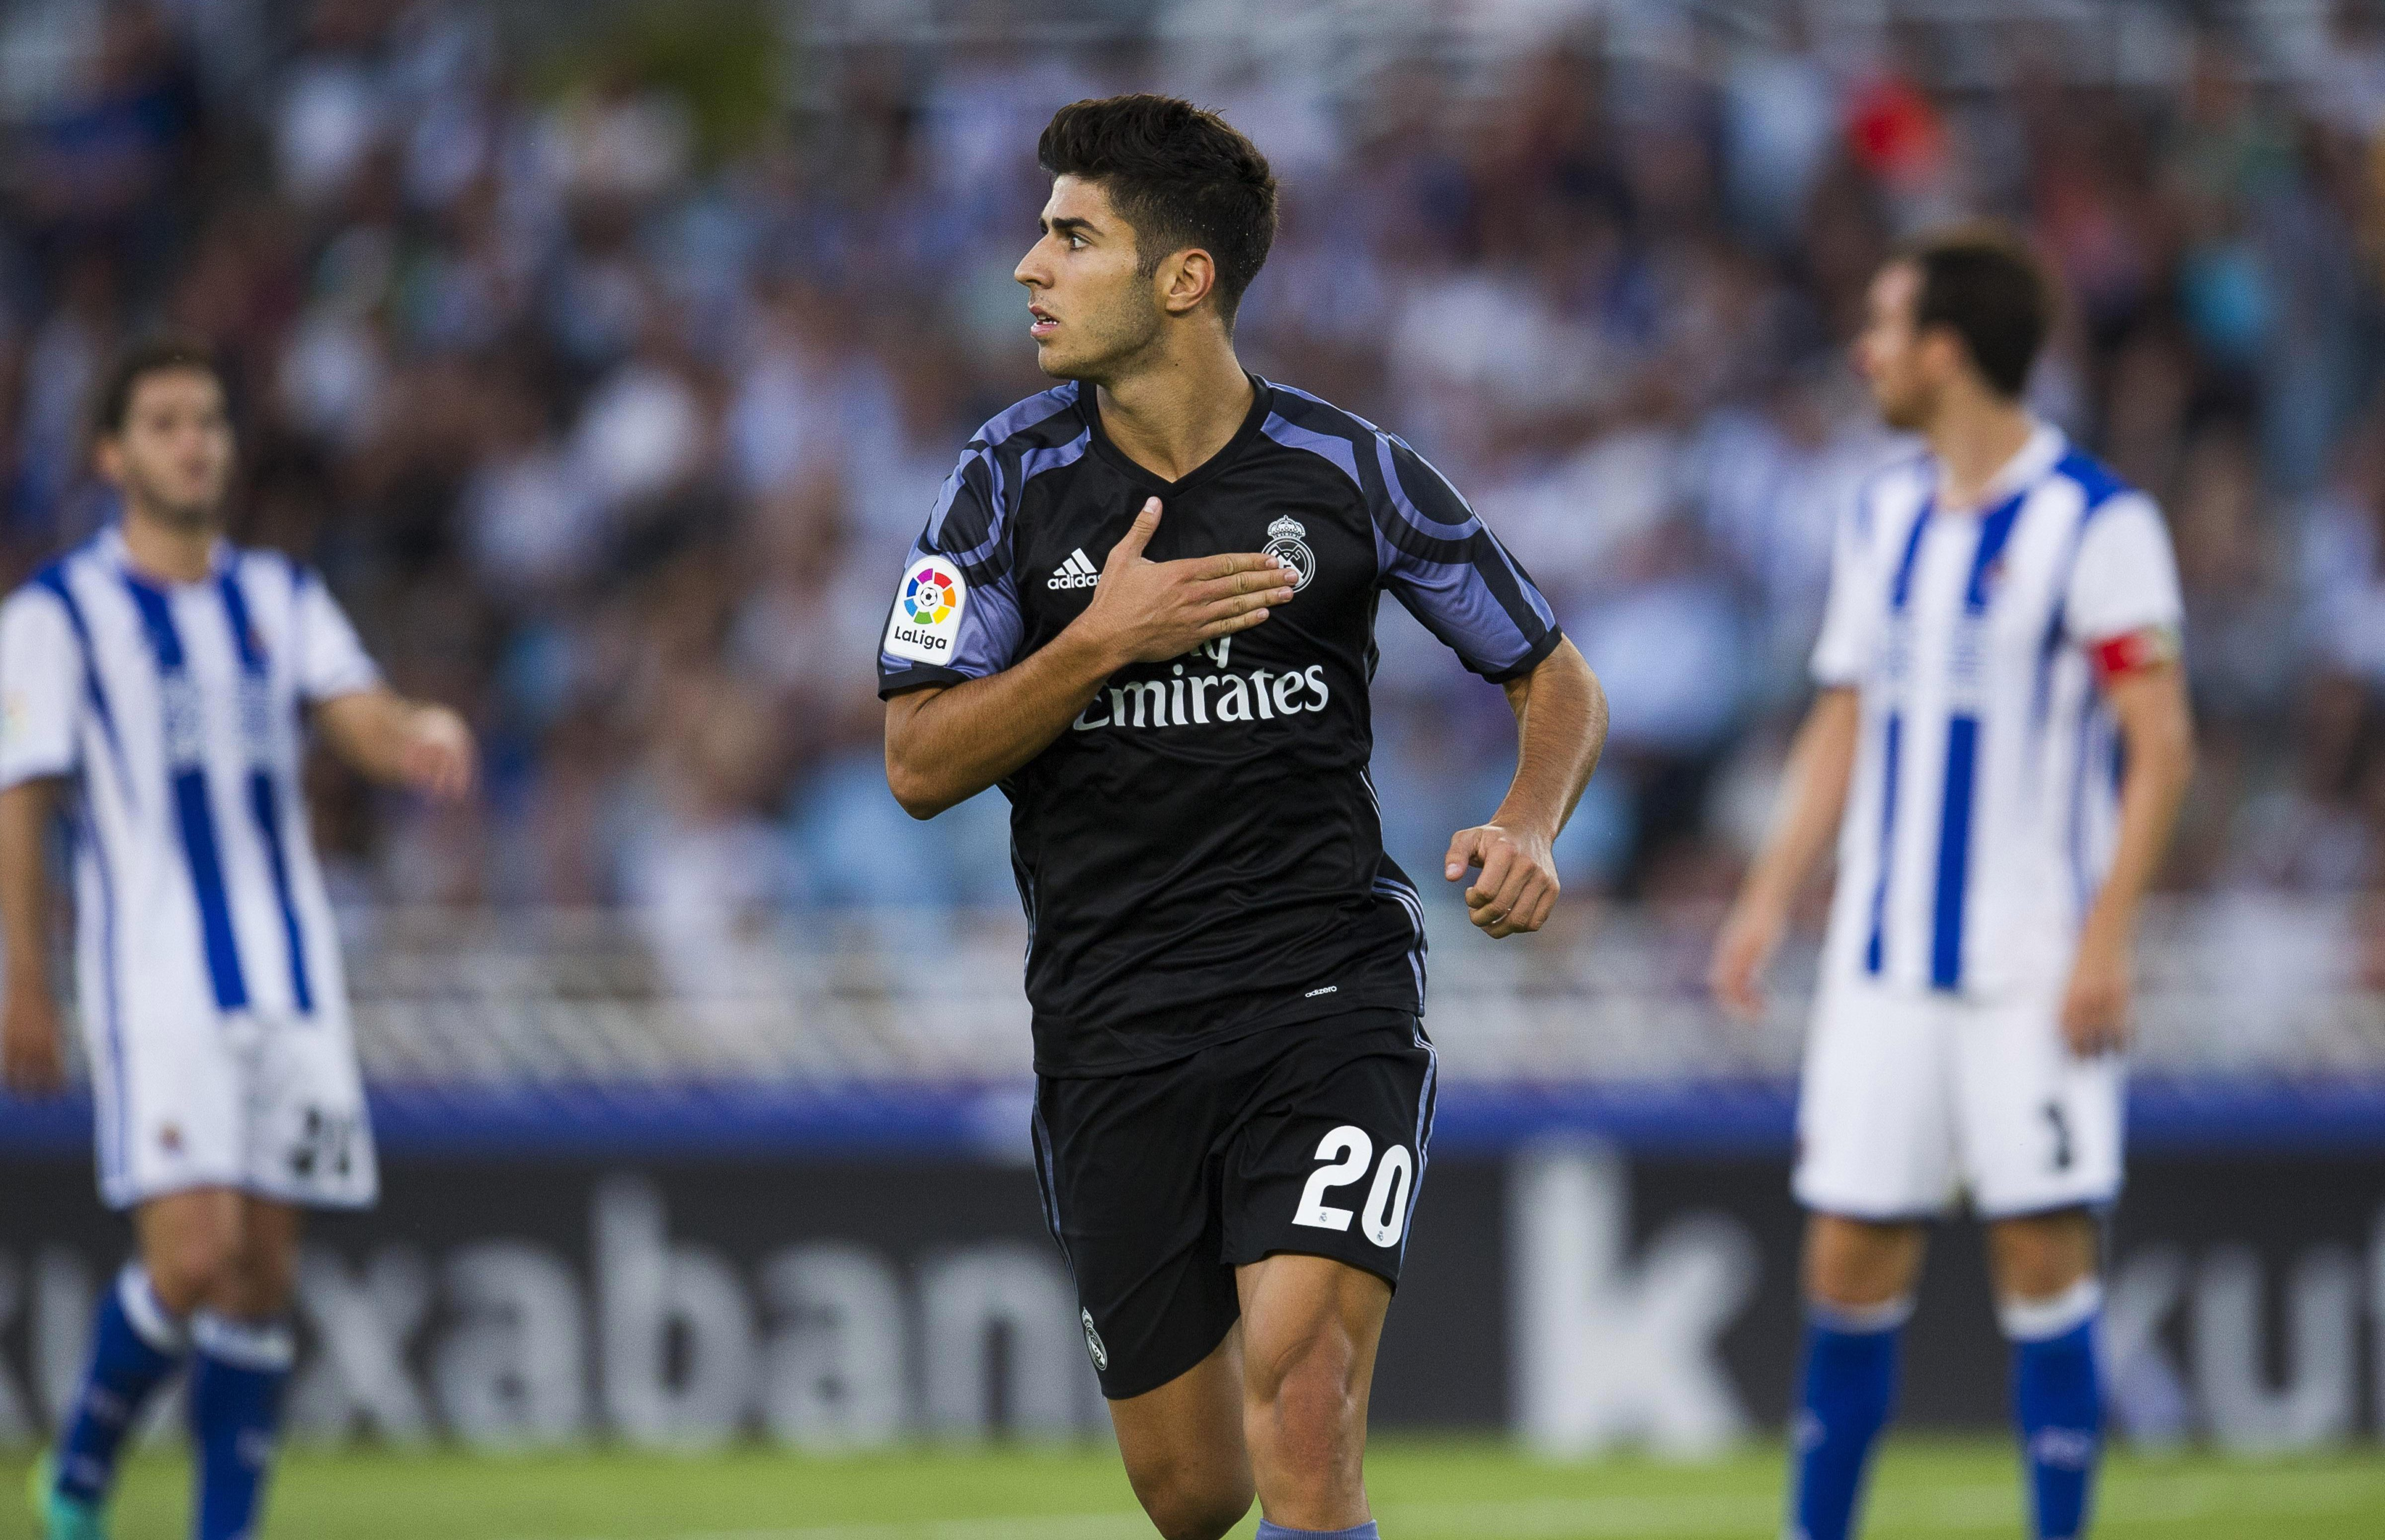 Go and watch Asensio's goal on YouTube once you're done here though